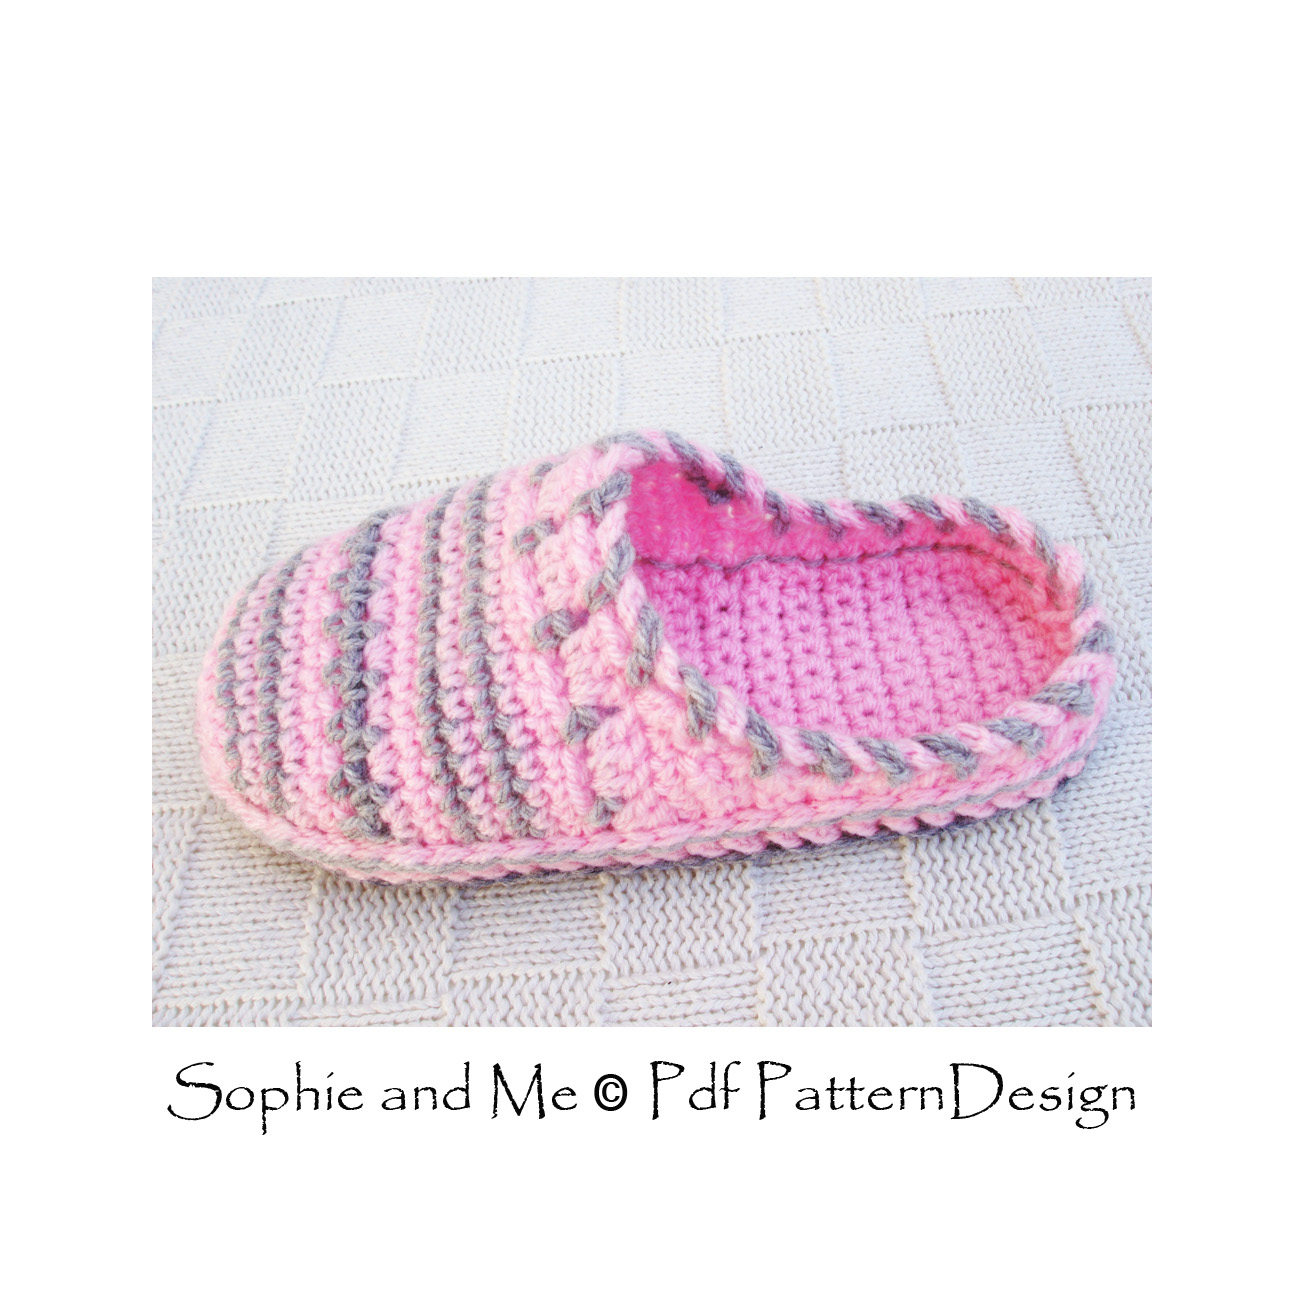 Free crochet pattern for slip on slippers dancox for sophie and me sweater clog slip in crochet slippers free crochet pattern bankloansurffo Choice Image